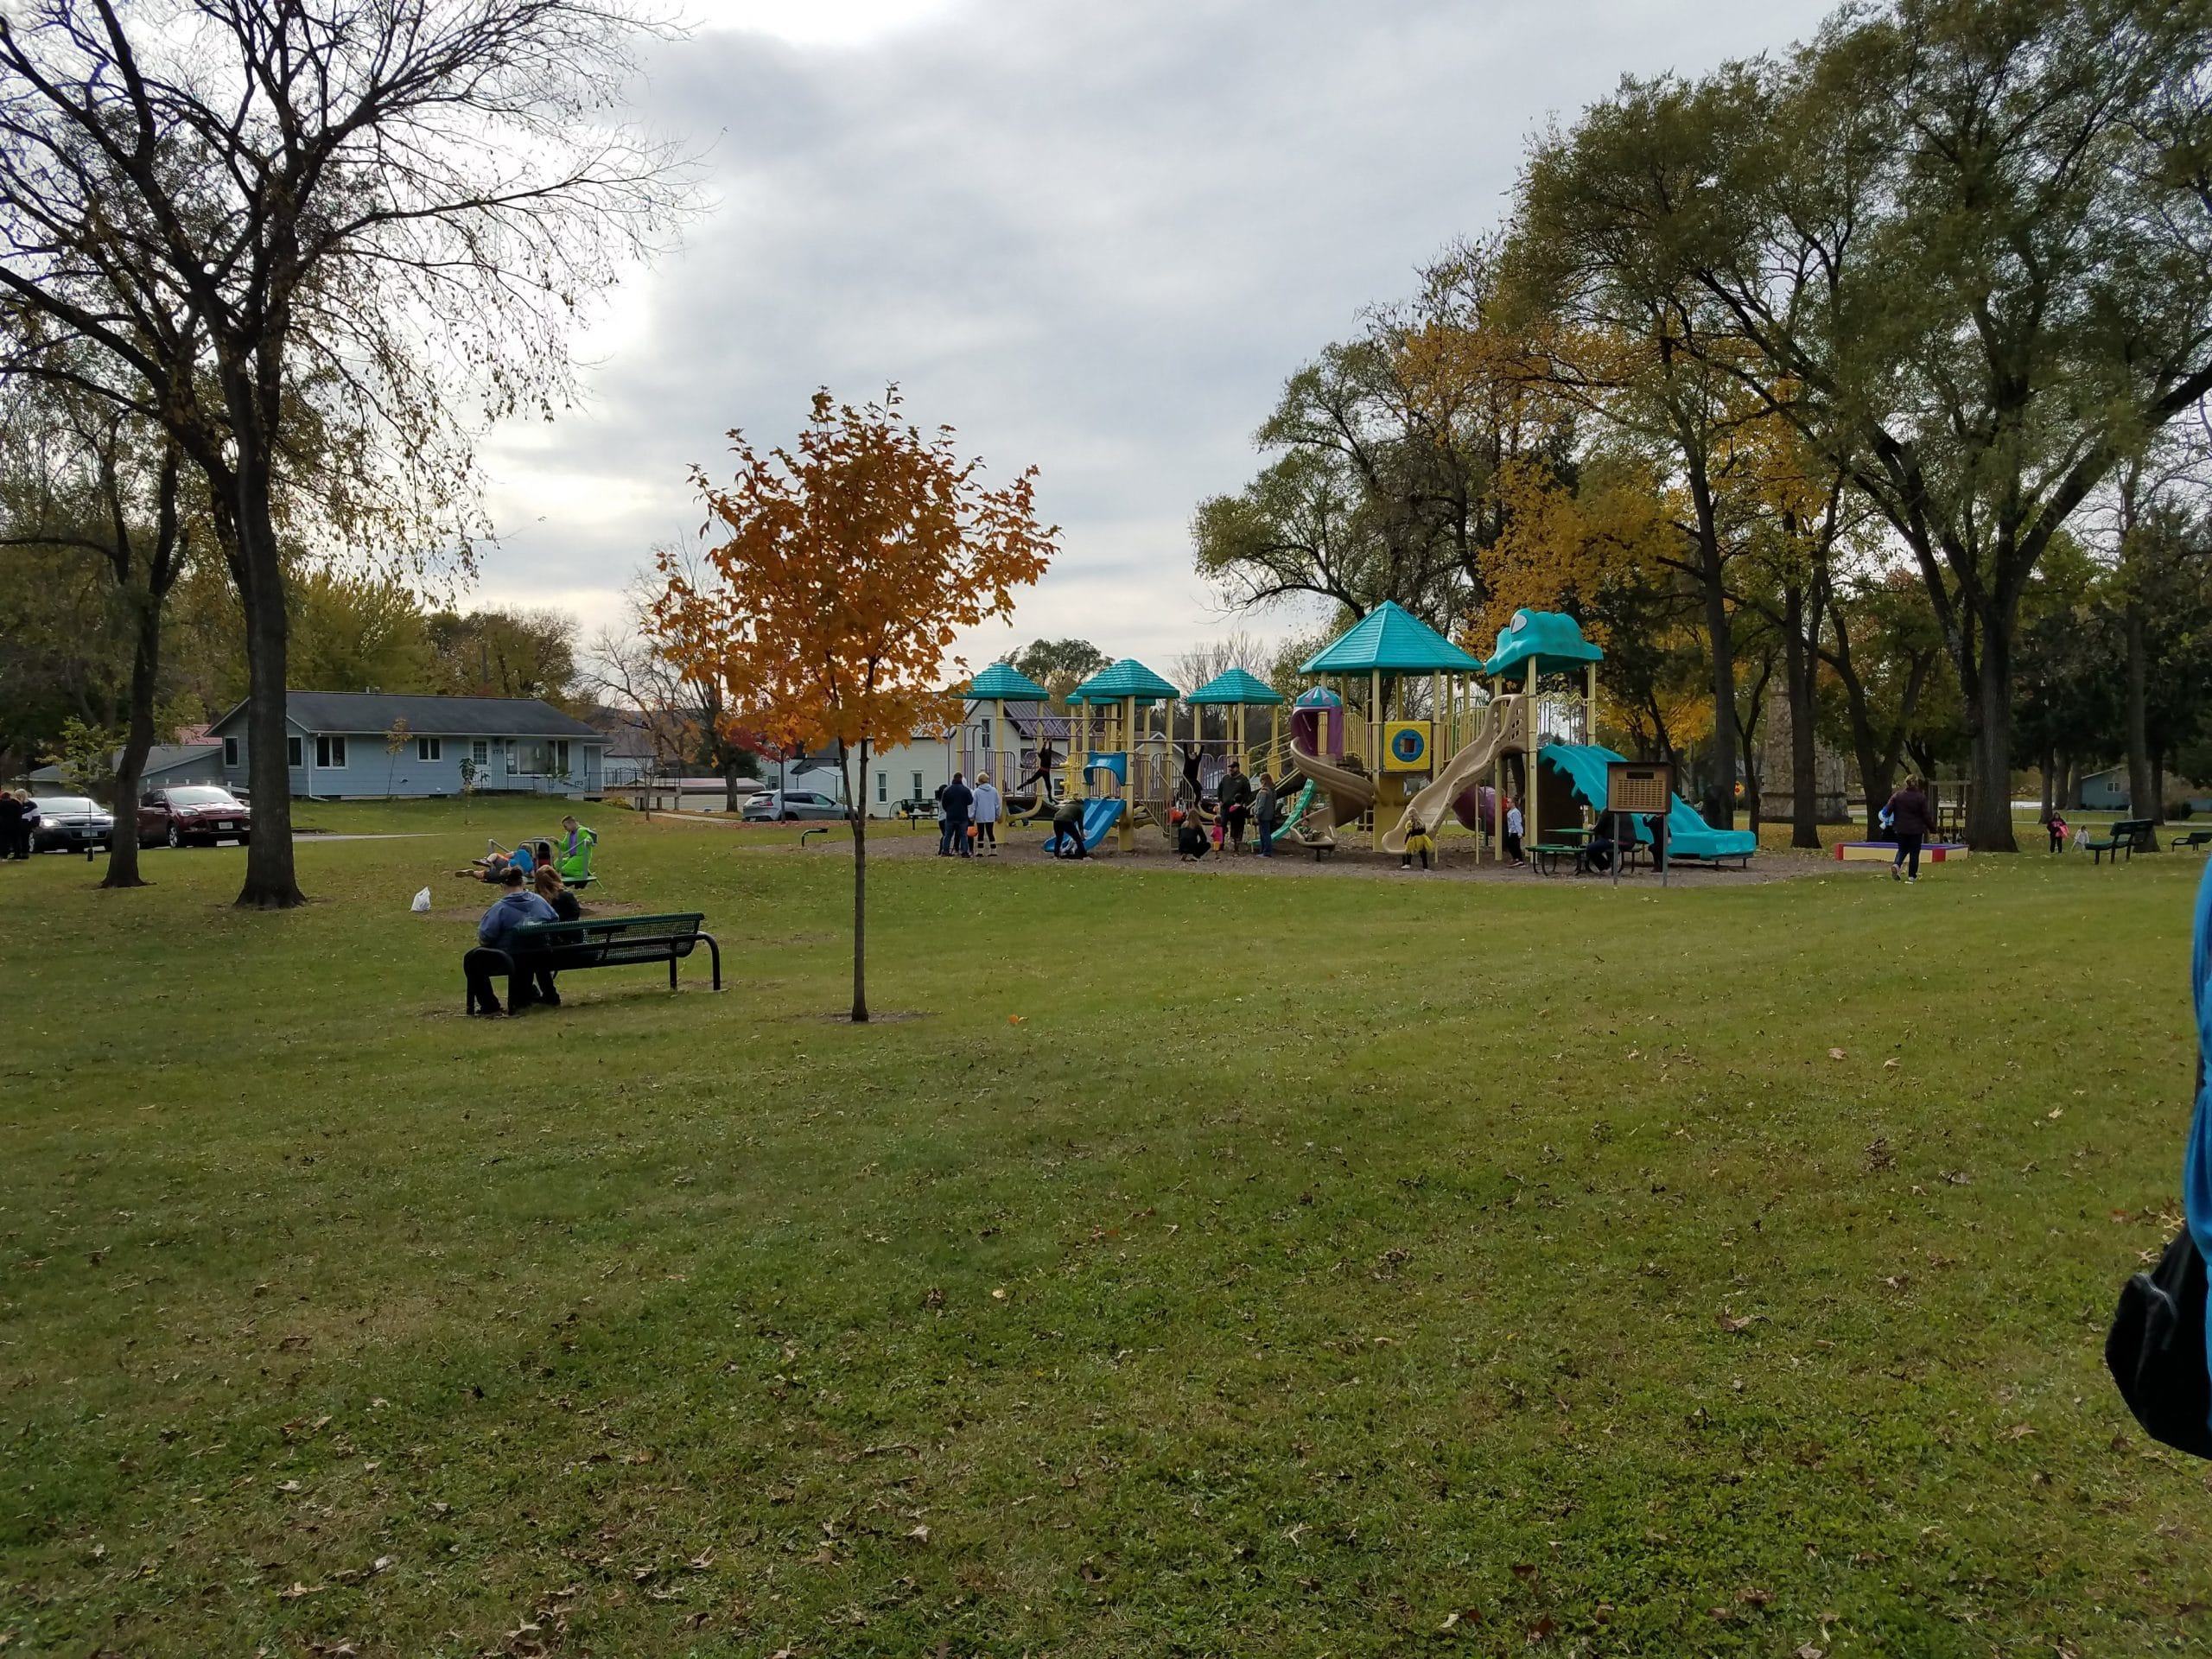 City of Buffalo City 2021 Resident Photo Submissions